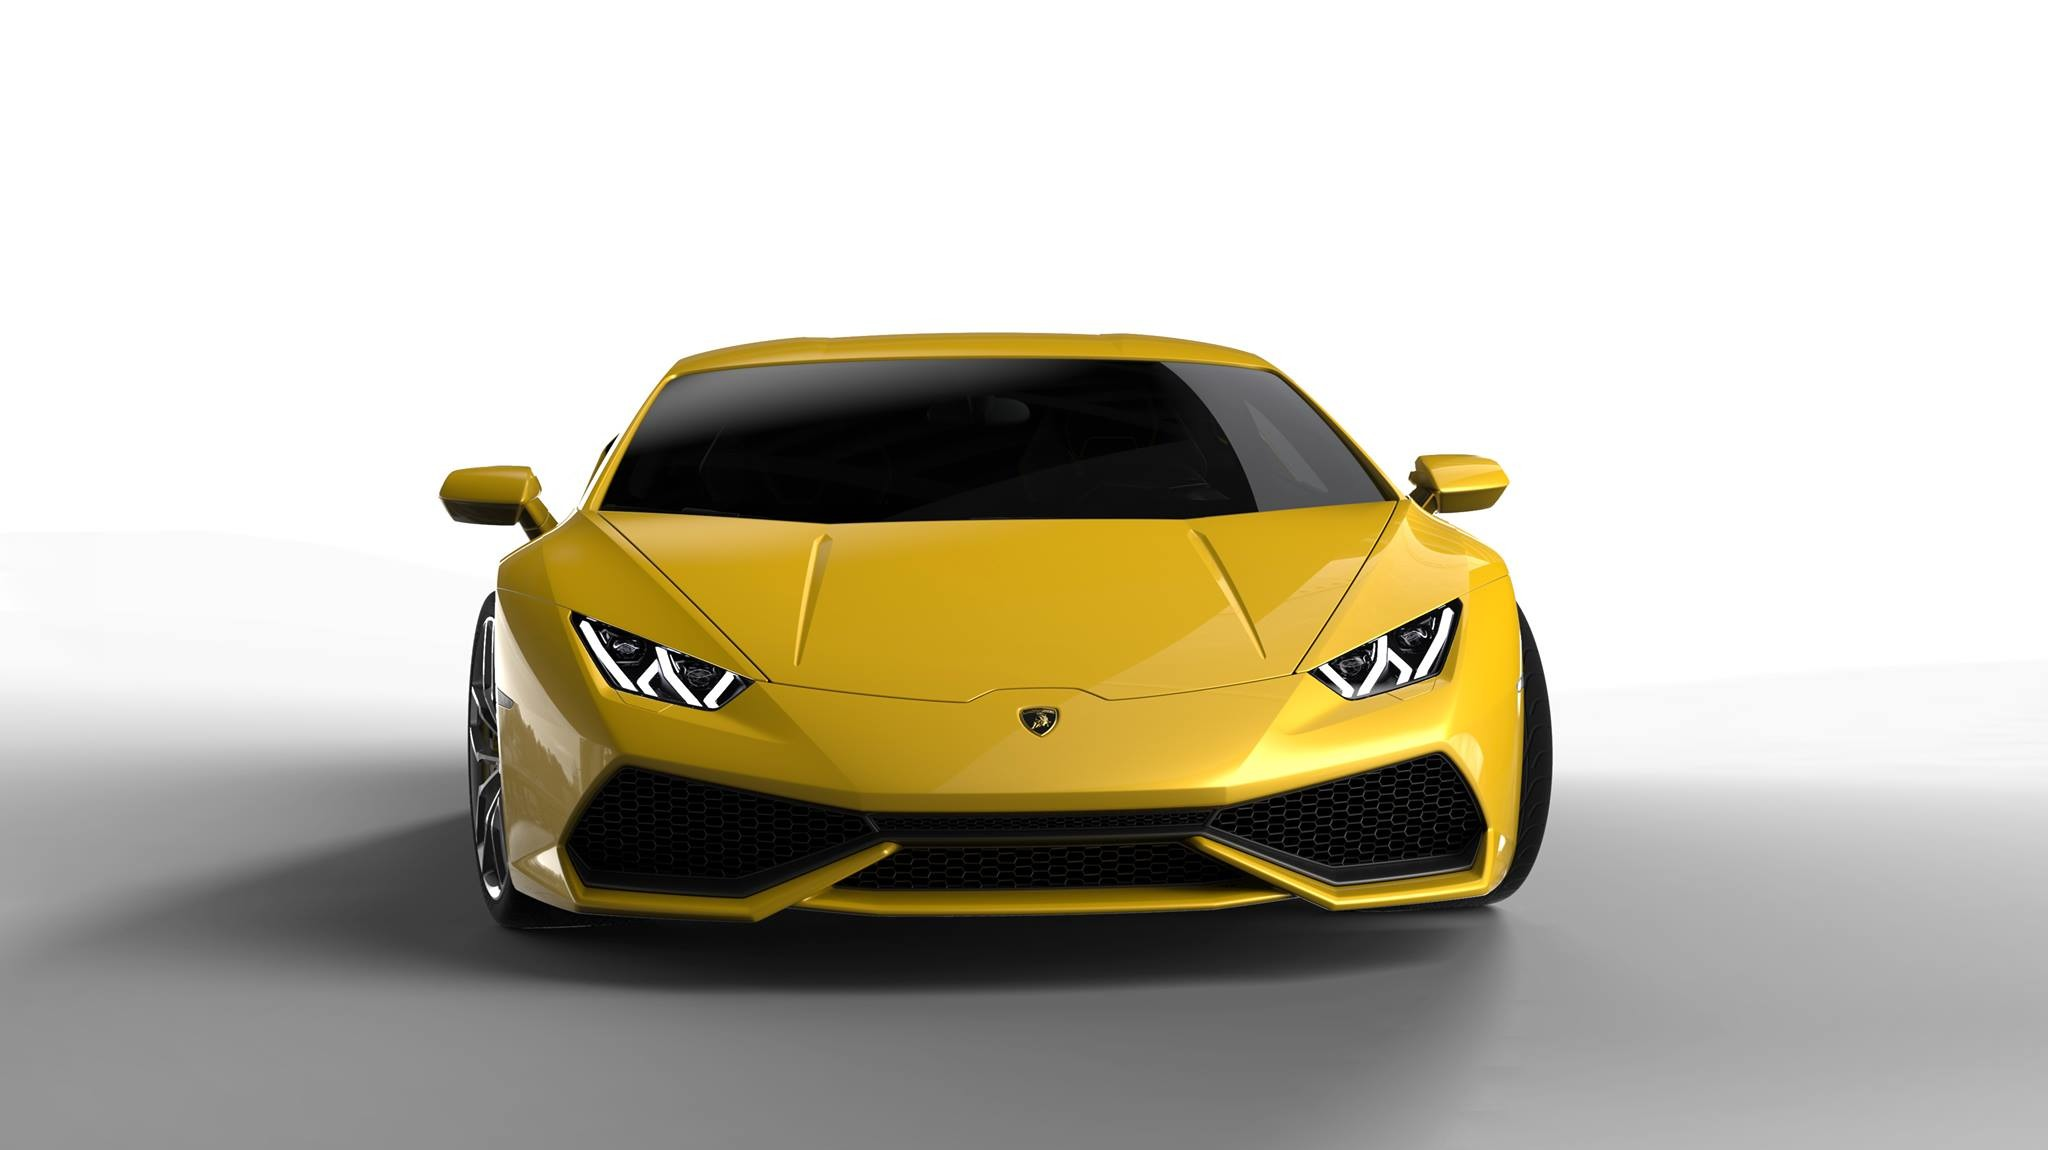 Lamborghini Huracan Wallpaper High Reso